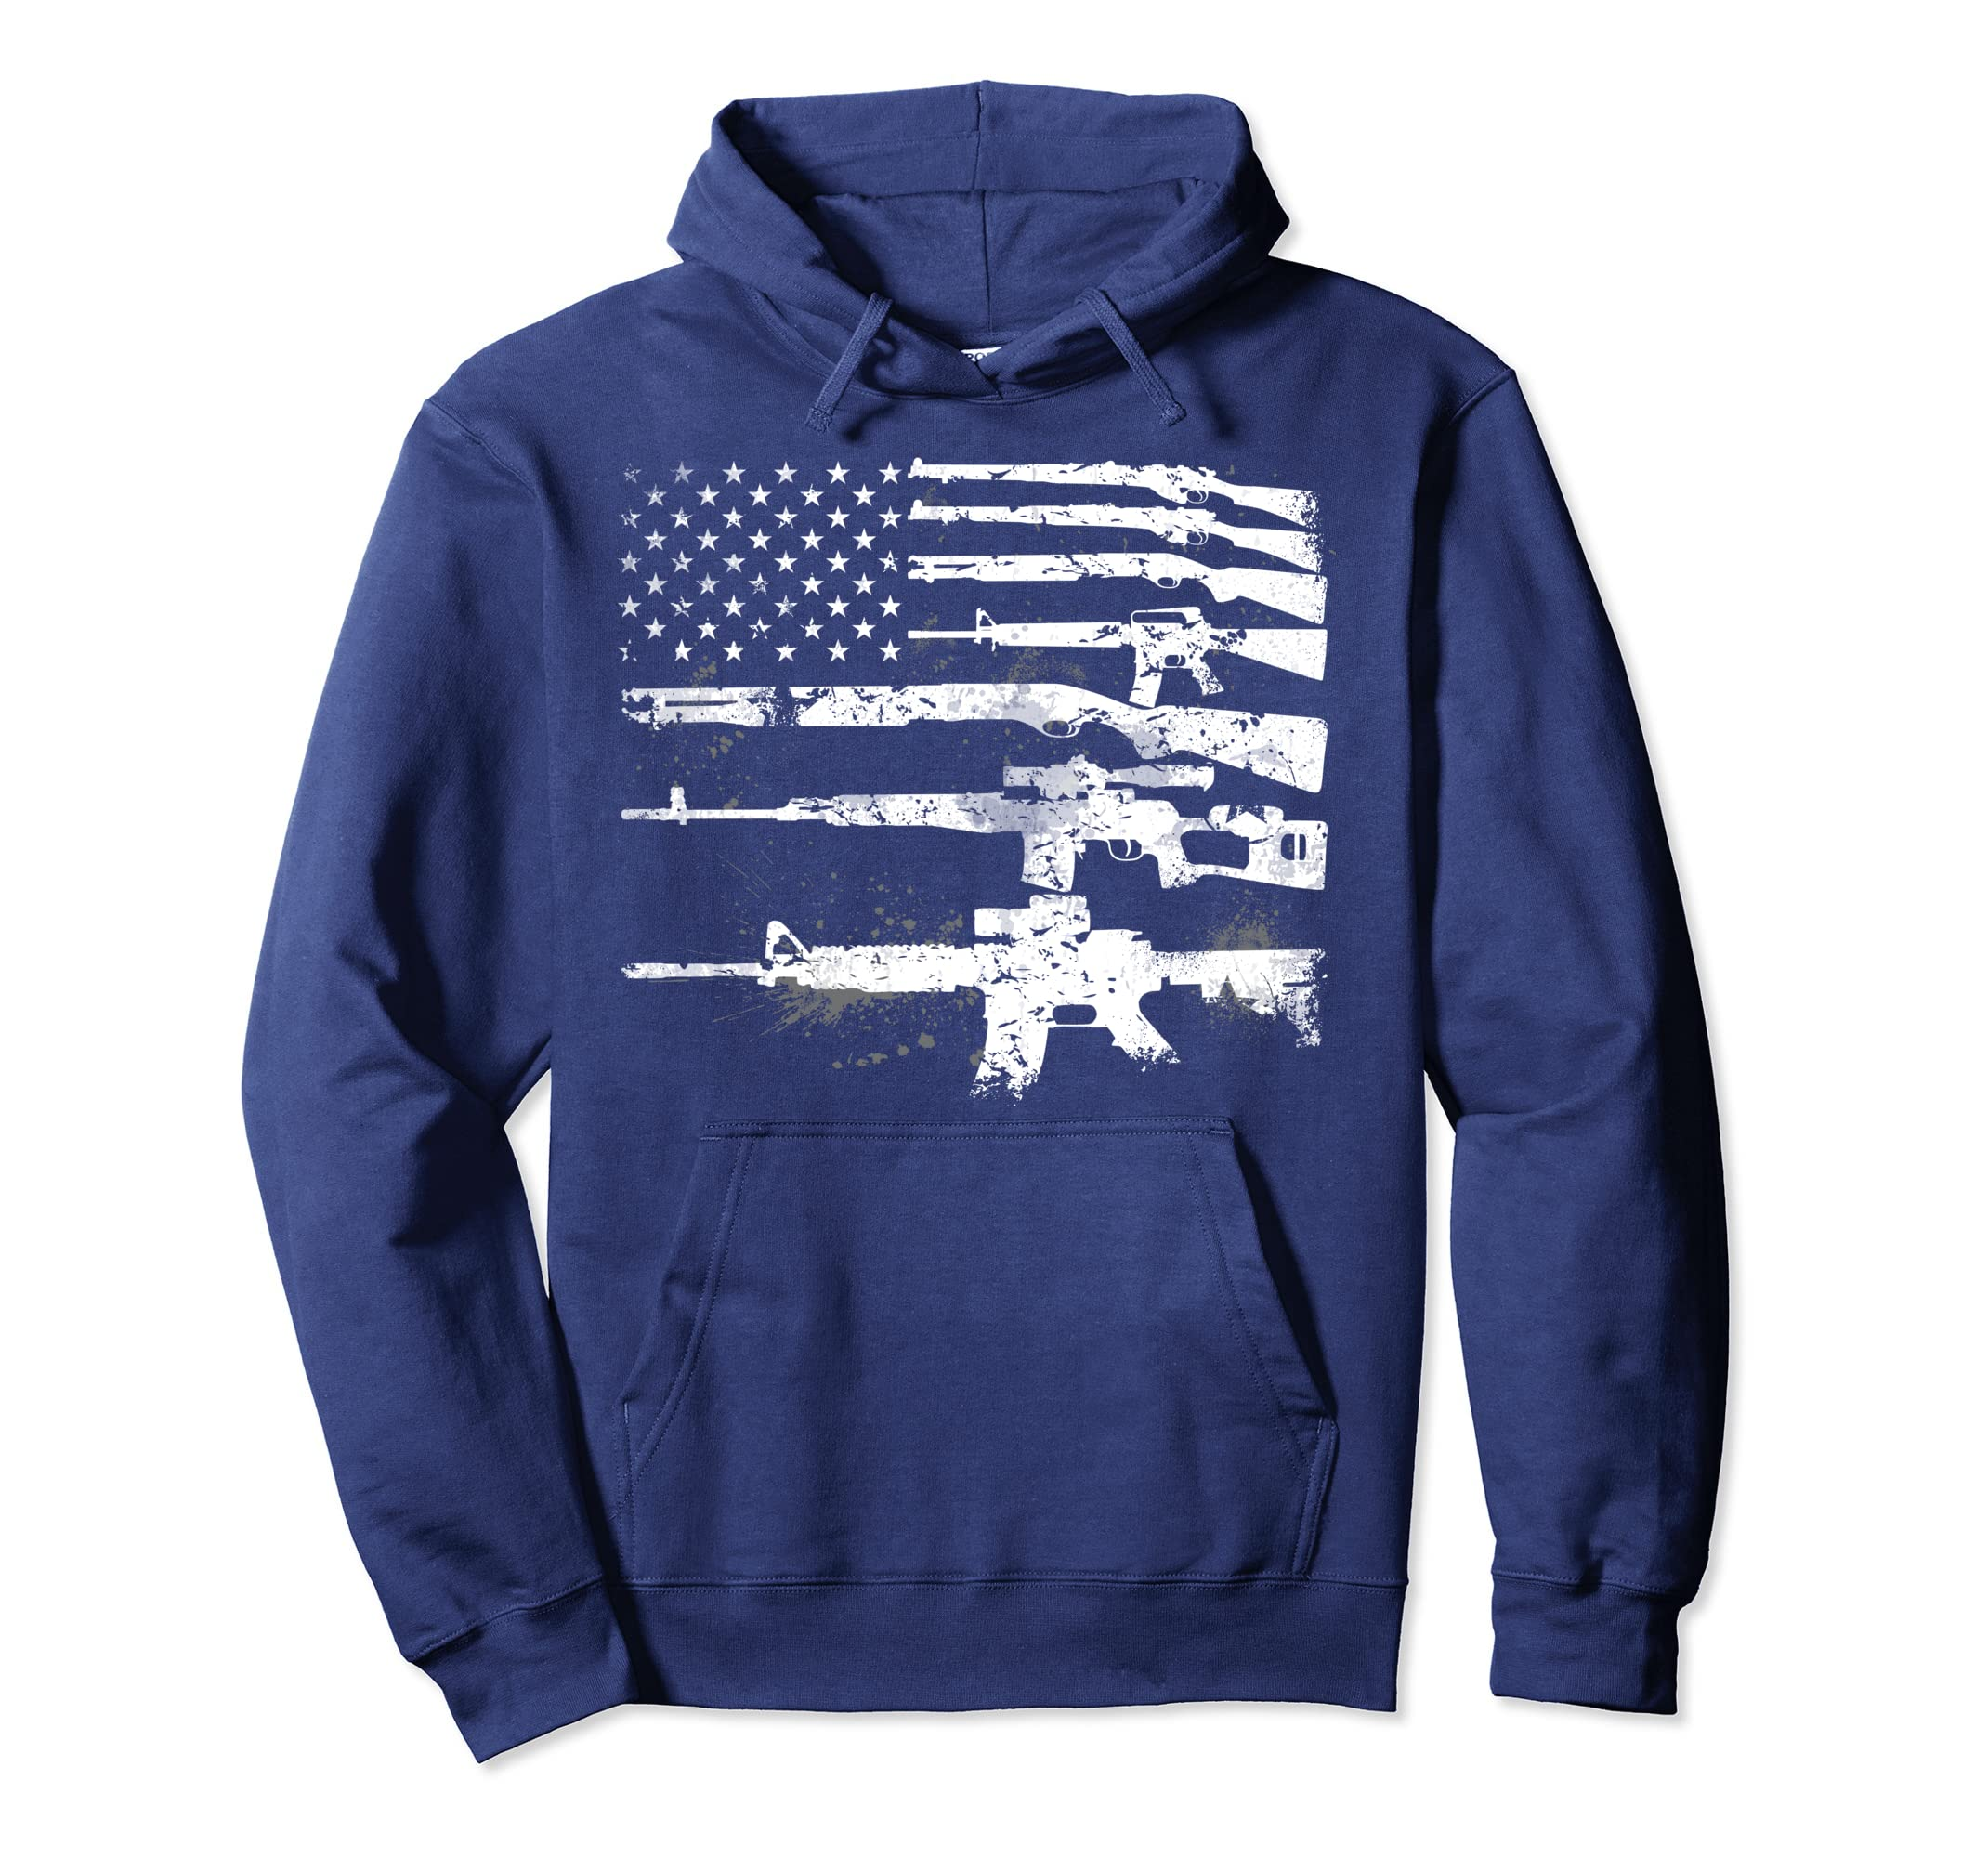 ffc73fdd48474 Amazon.com: USA Guns Weapons Flag Rifles Stripes Armed America Hoodie:  Clothing